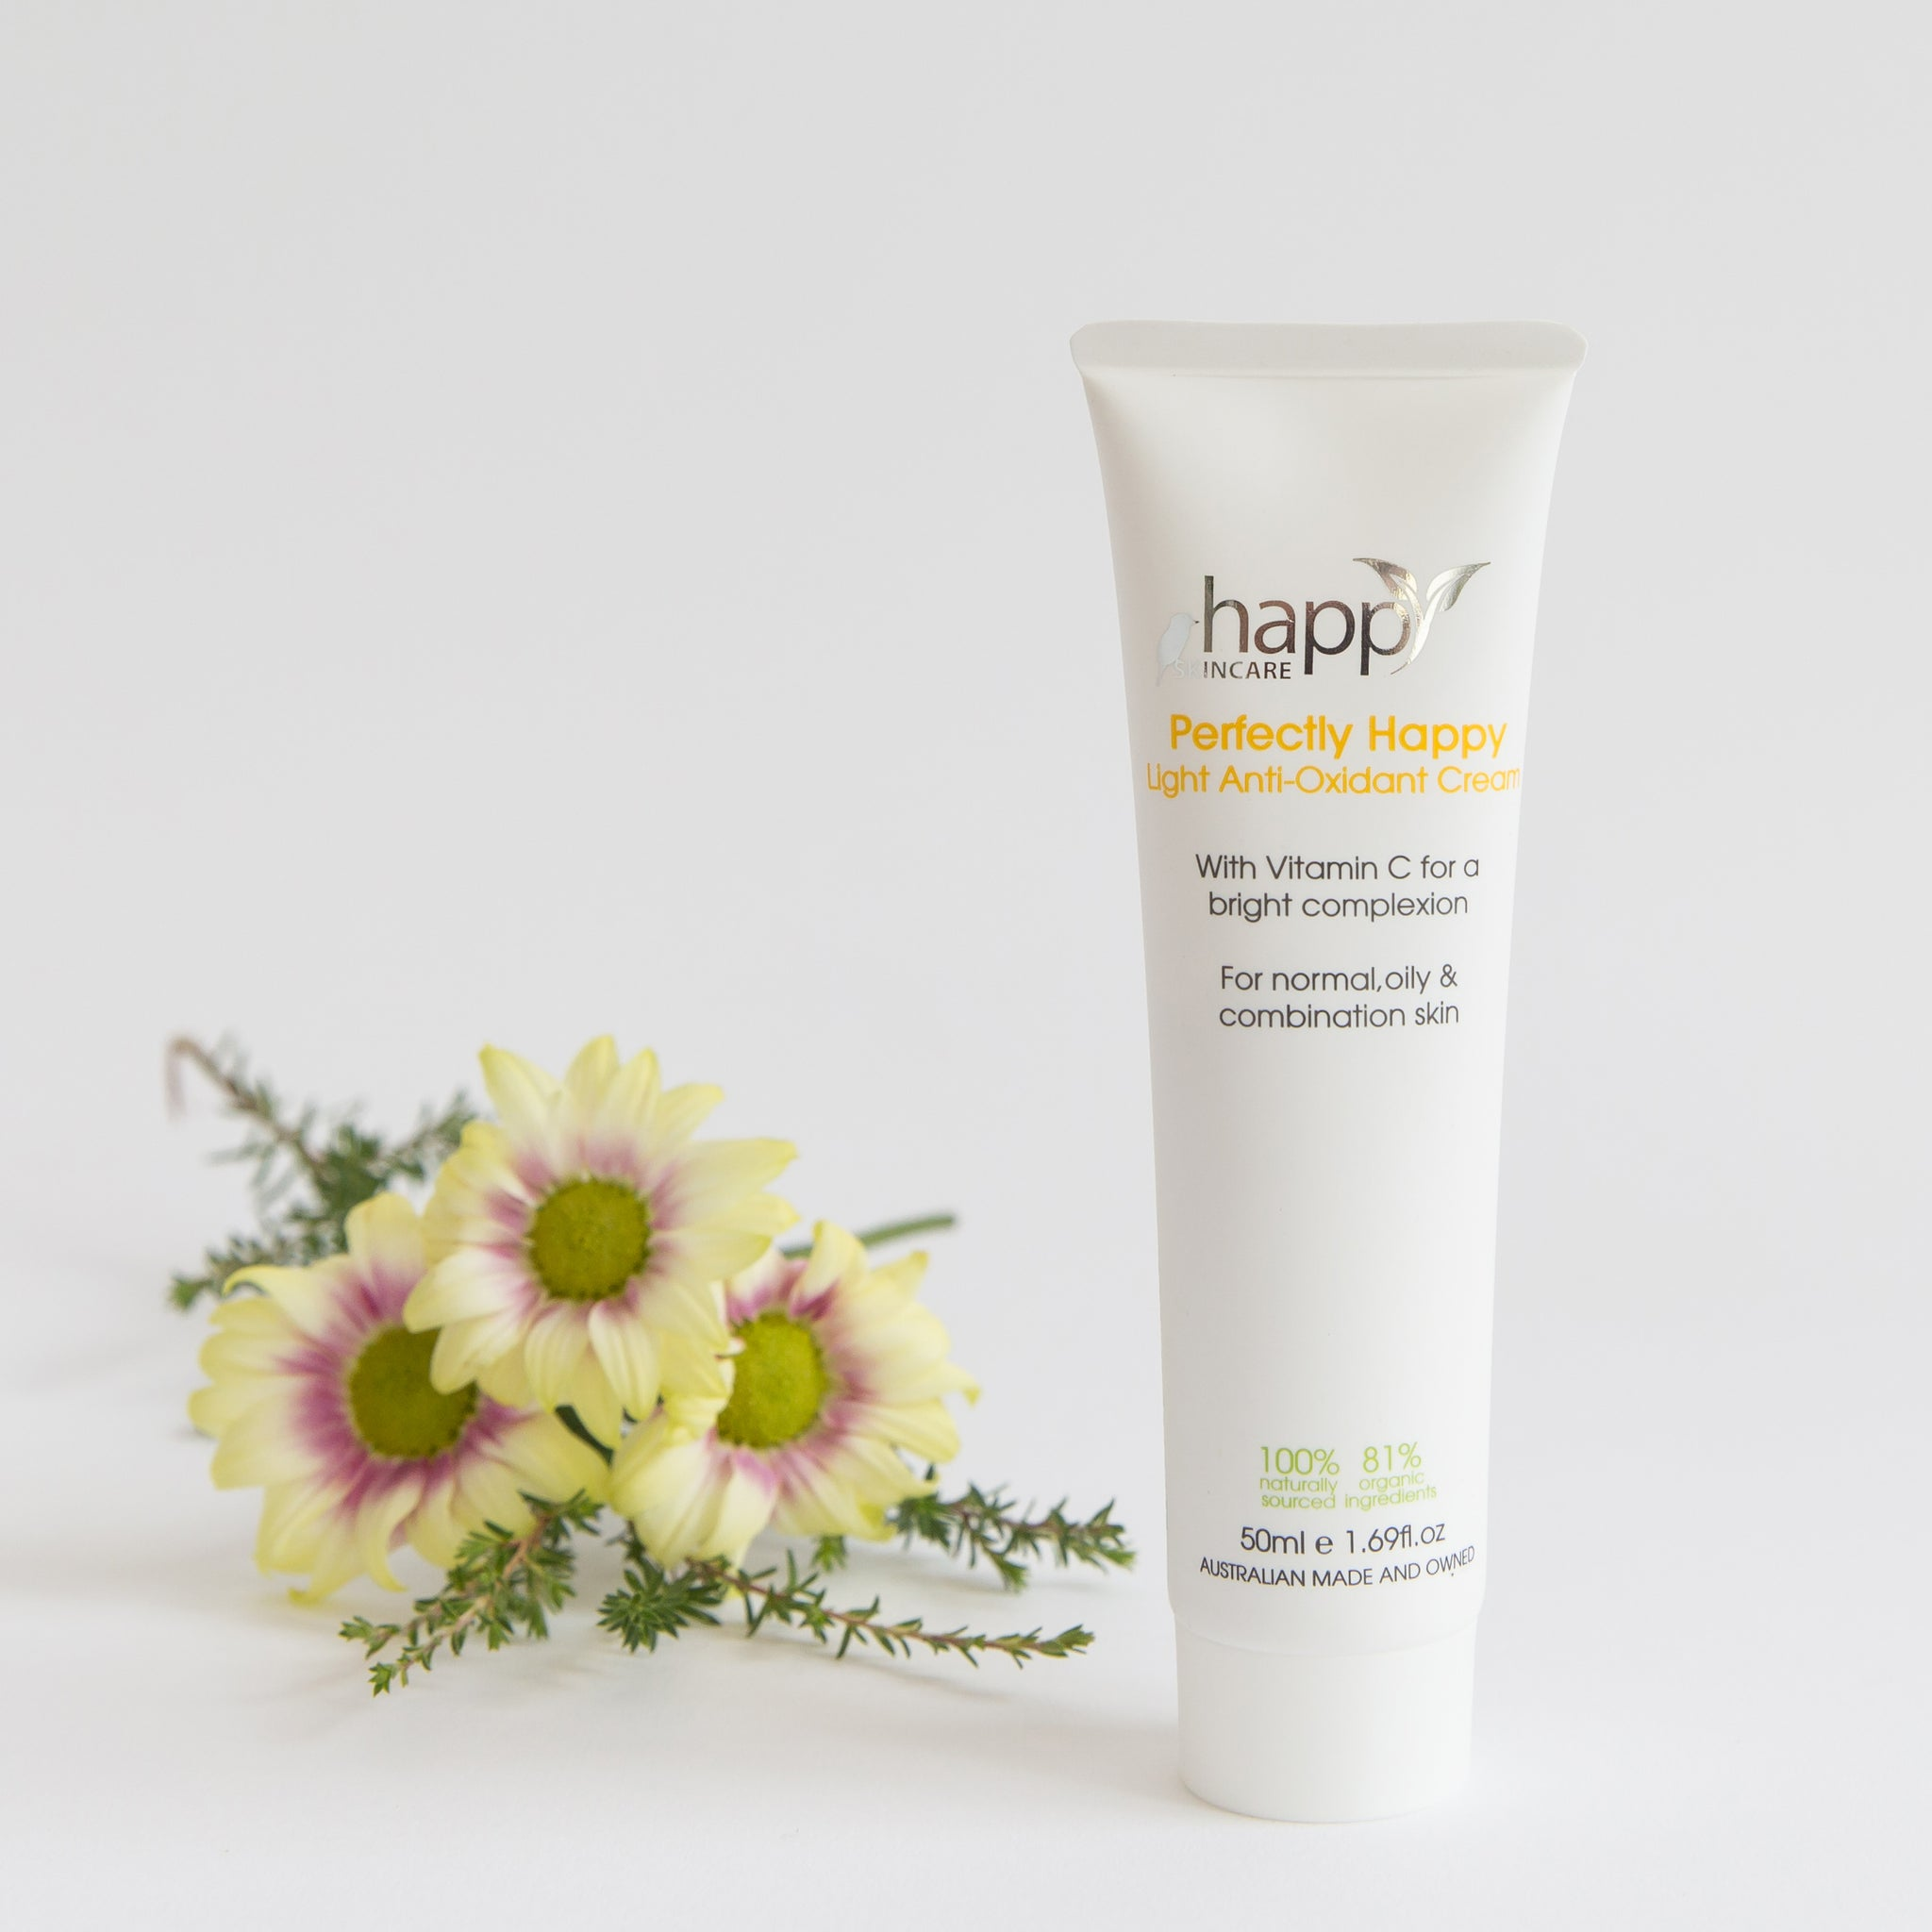 Happy Skincare 'Perfectly Happy' Light Anti-Oxidant Cream 50ml